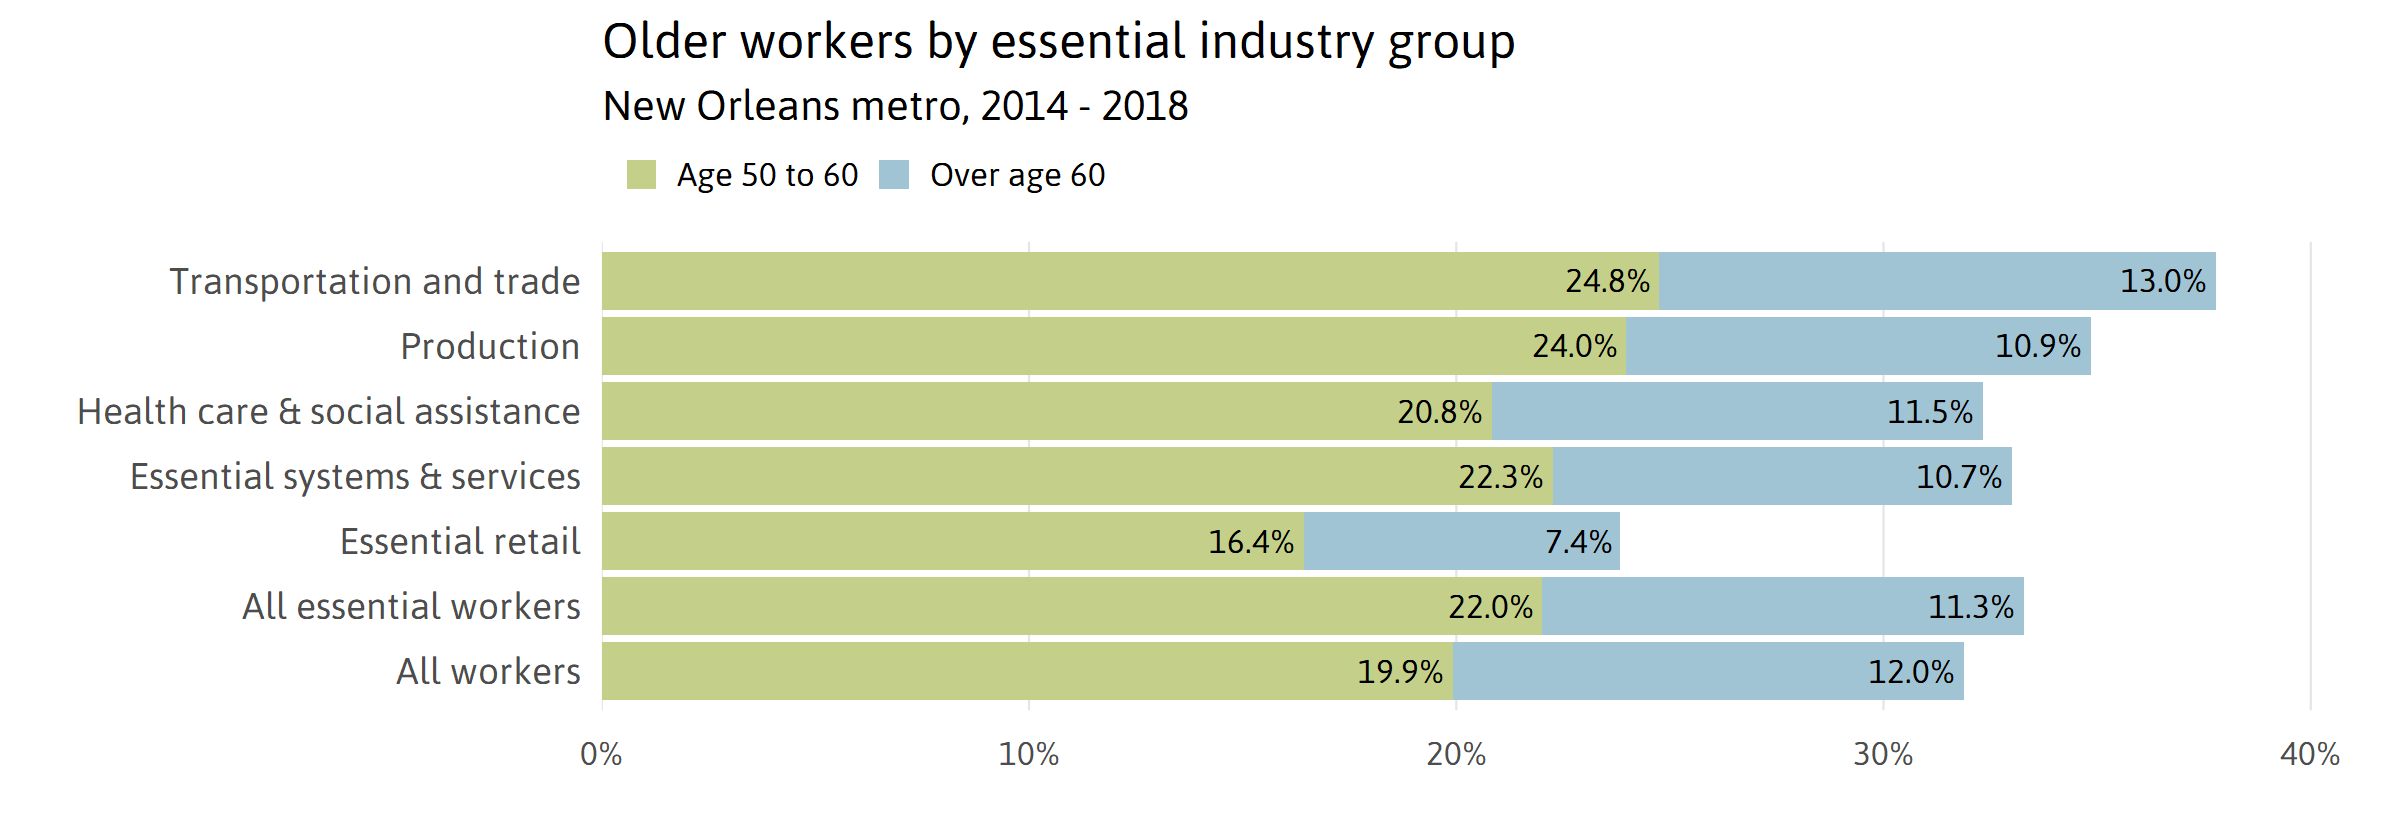 Older workers by essential industry group